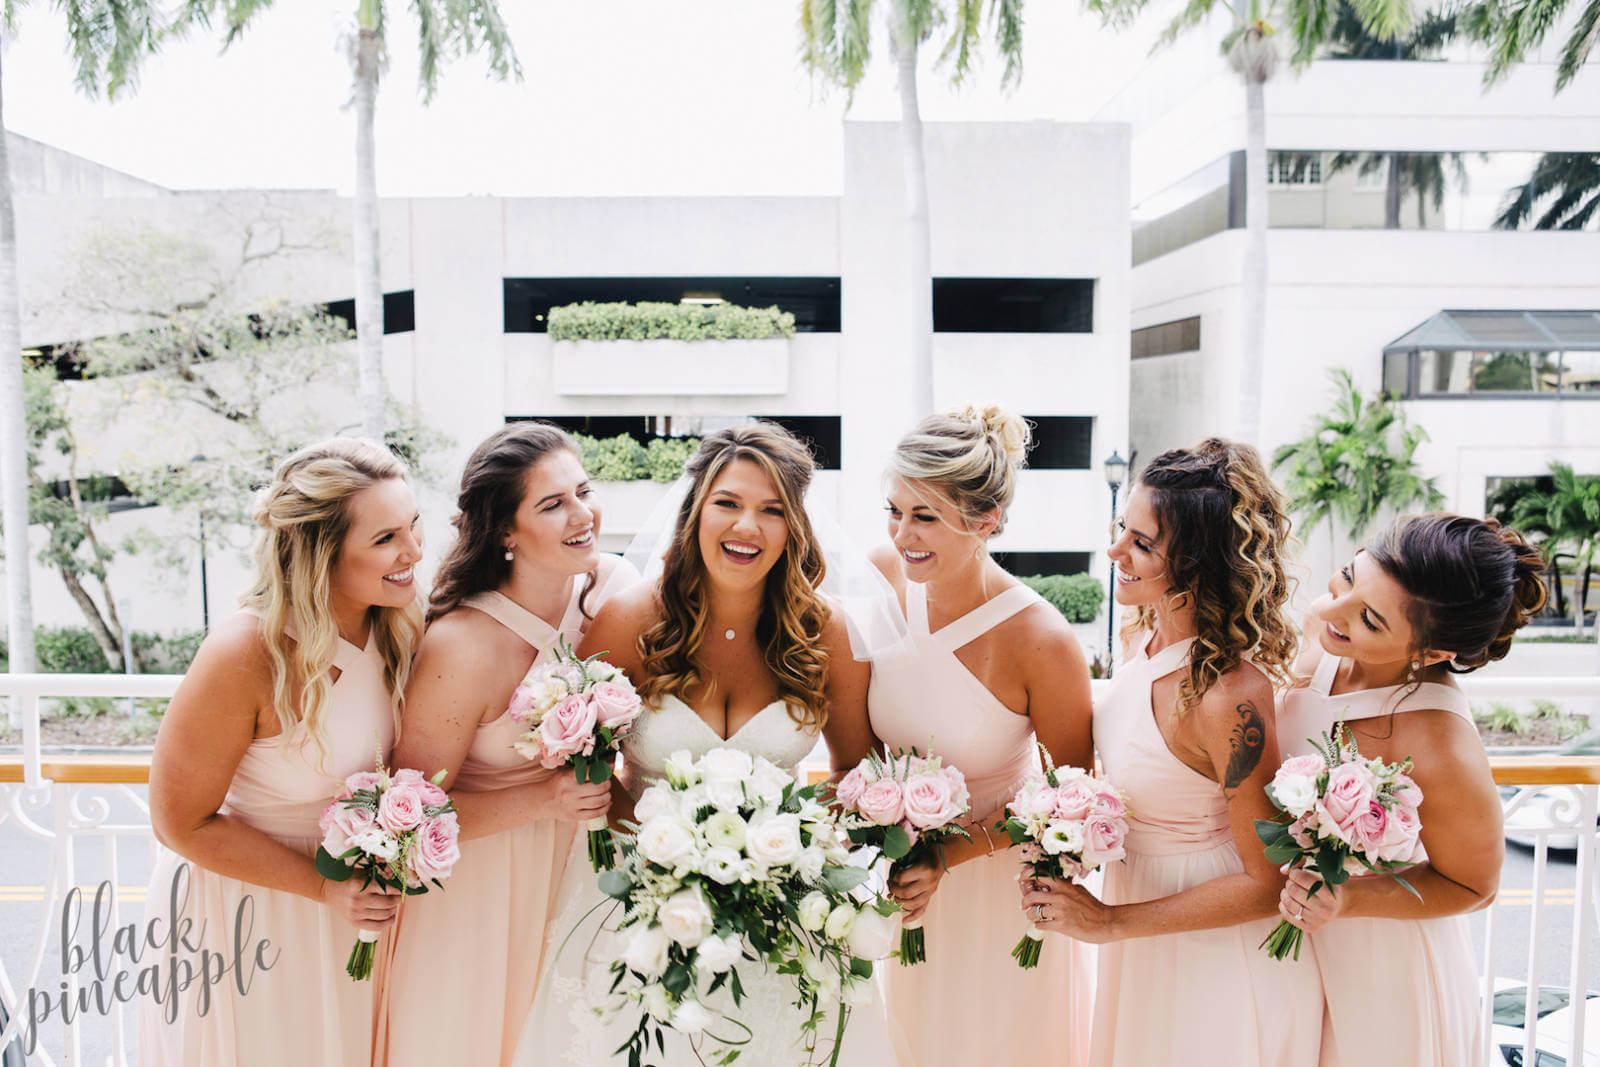 The sunny climate, beautiful white sandy beaches, flaming sunsets, professional photographers, florists, top caterers, and superb resorts make it easy to plan your dream beach wedding in Southwest Florida. Photo by Elizabeth Barnett Black Pineapple Photography | MustDo.com